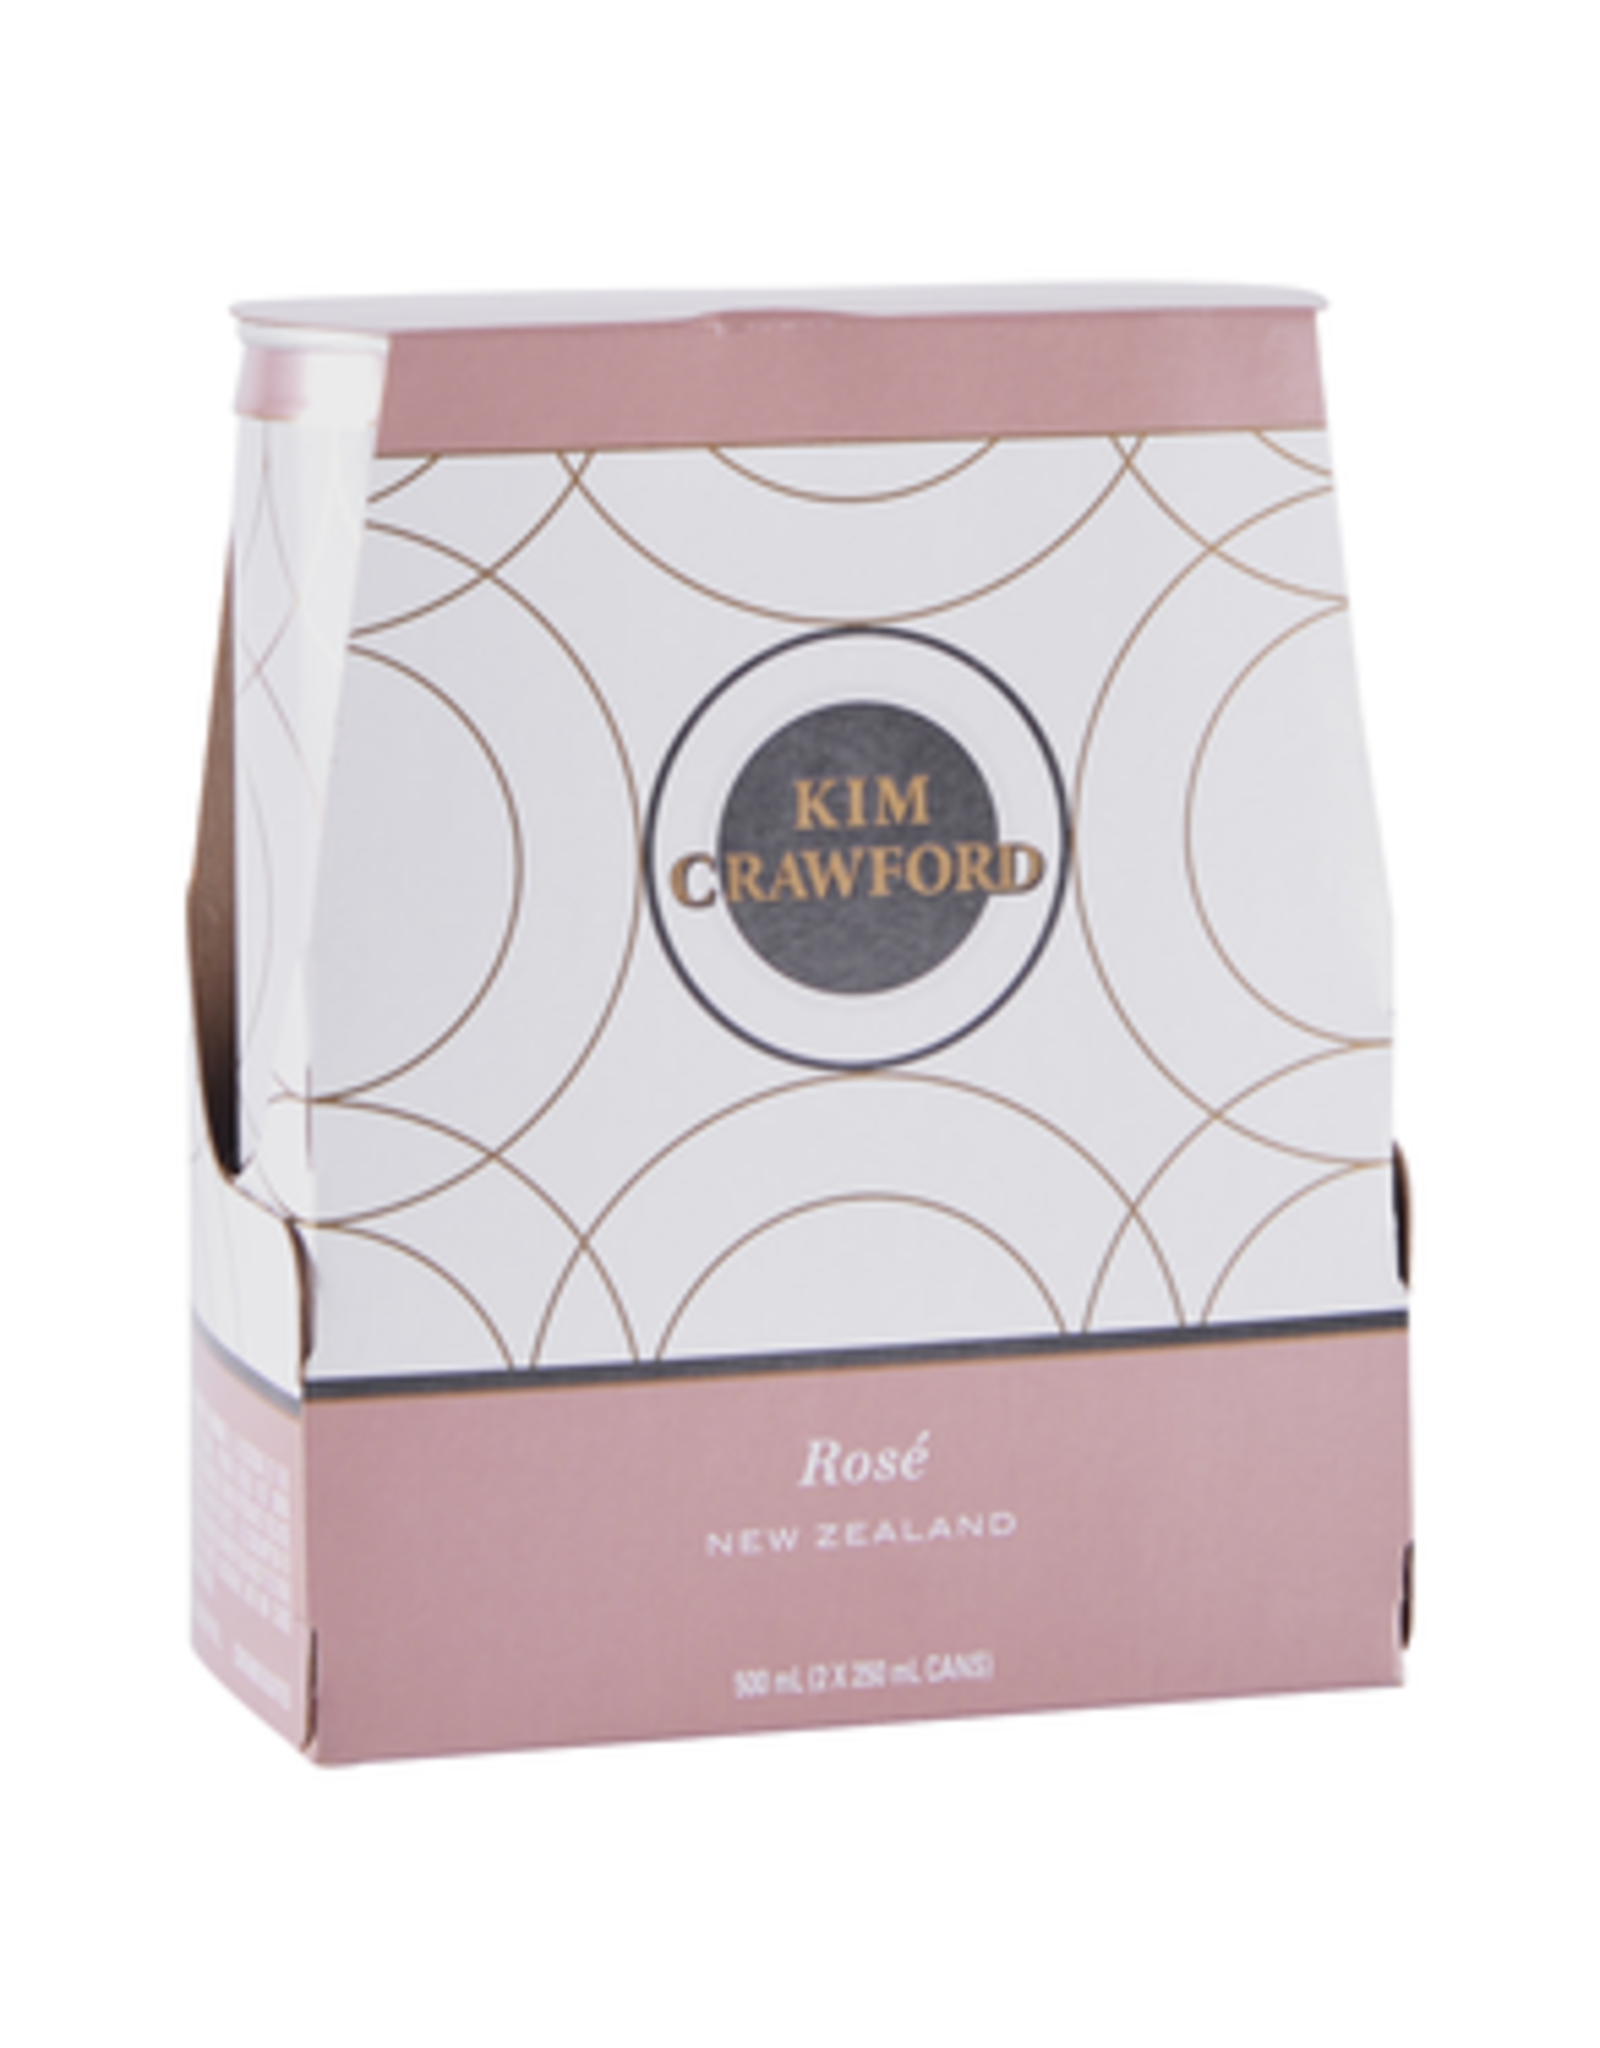 Kim Crawford Rose 200 ml can 2 pack